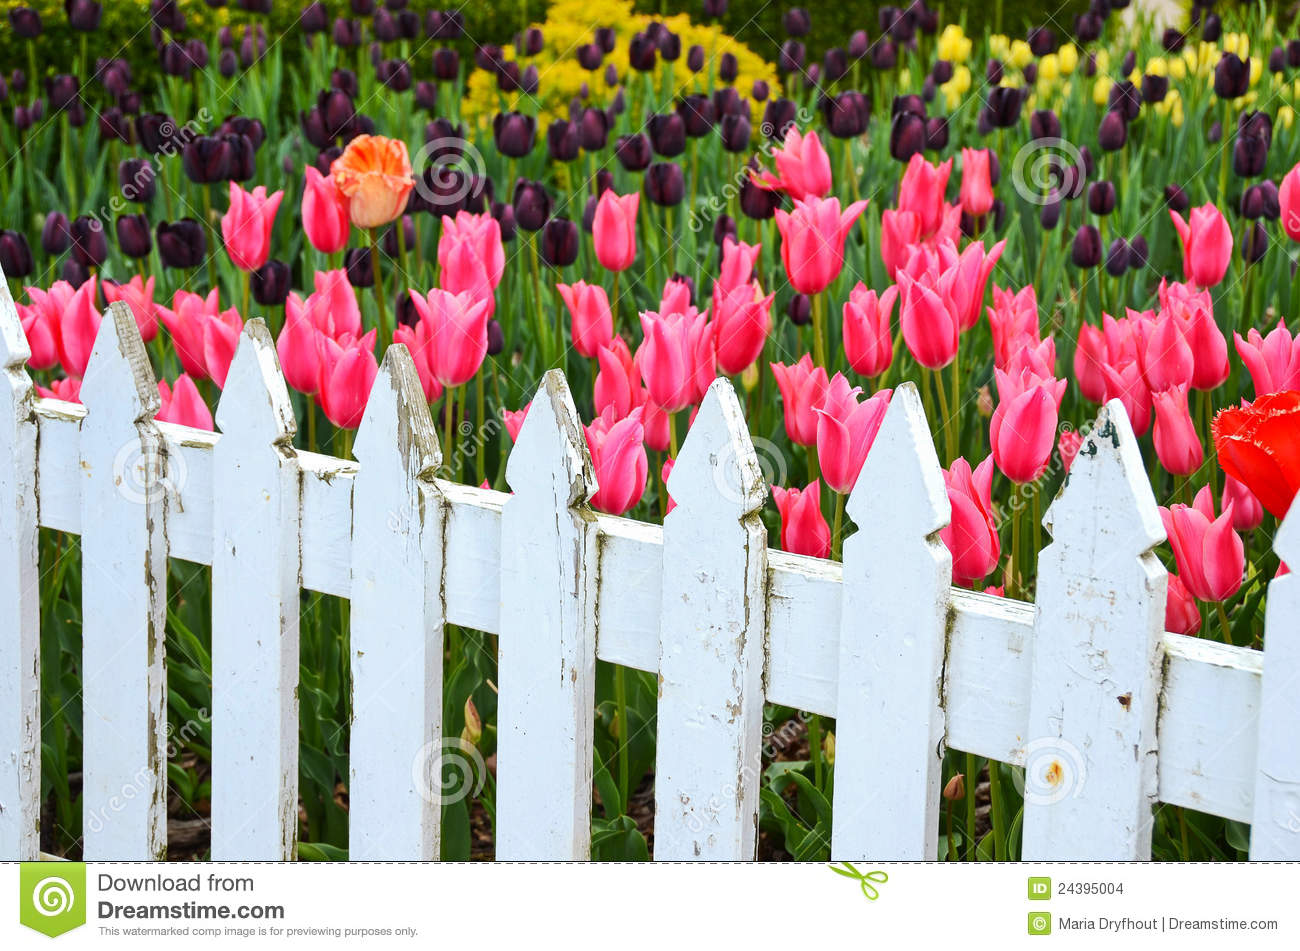 White Picket Fence With Tulips Stock Images - Image: 24395004